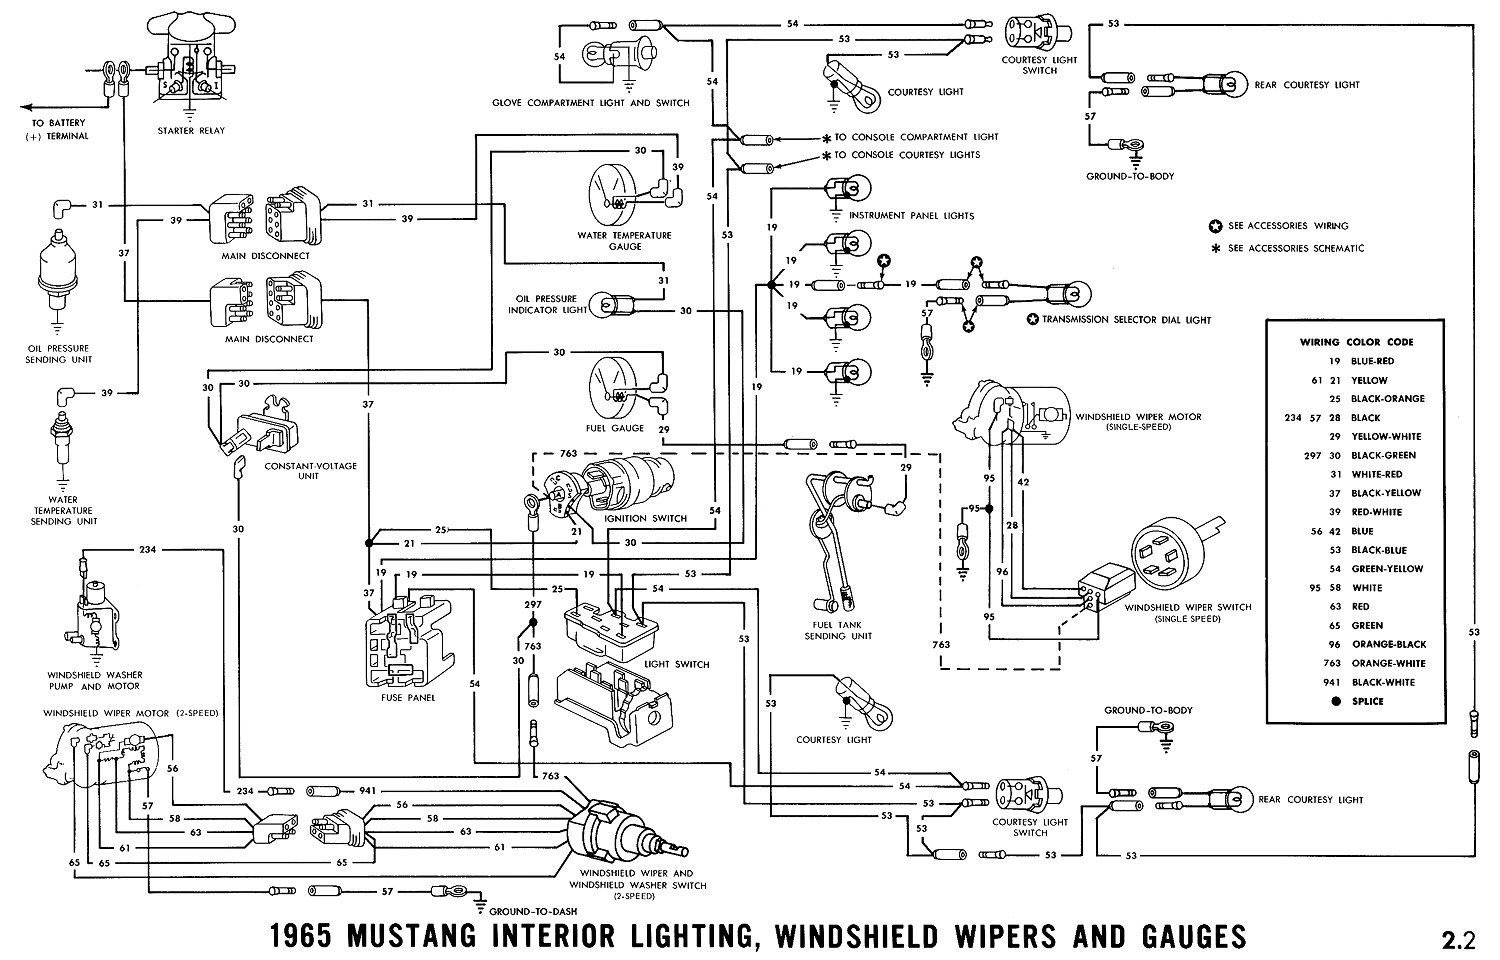 mustang wiring diagrams average joe restoration windshield wiper and gauges pictorial or schematic oil pressure